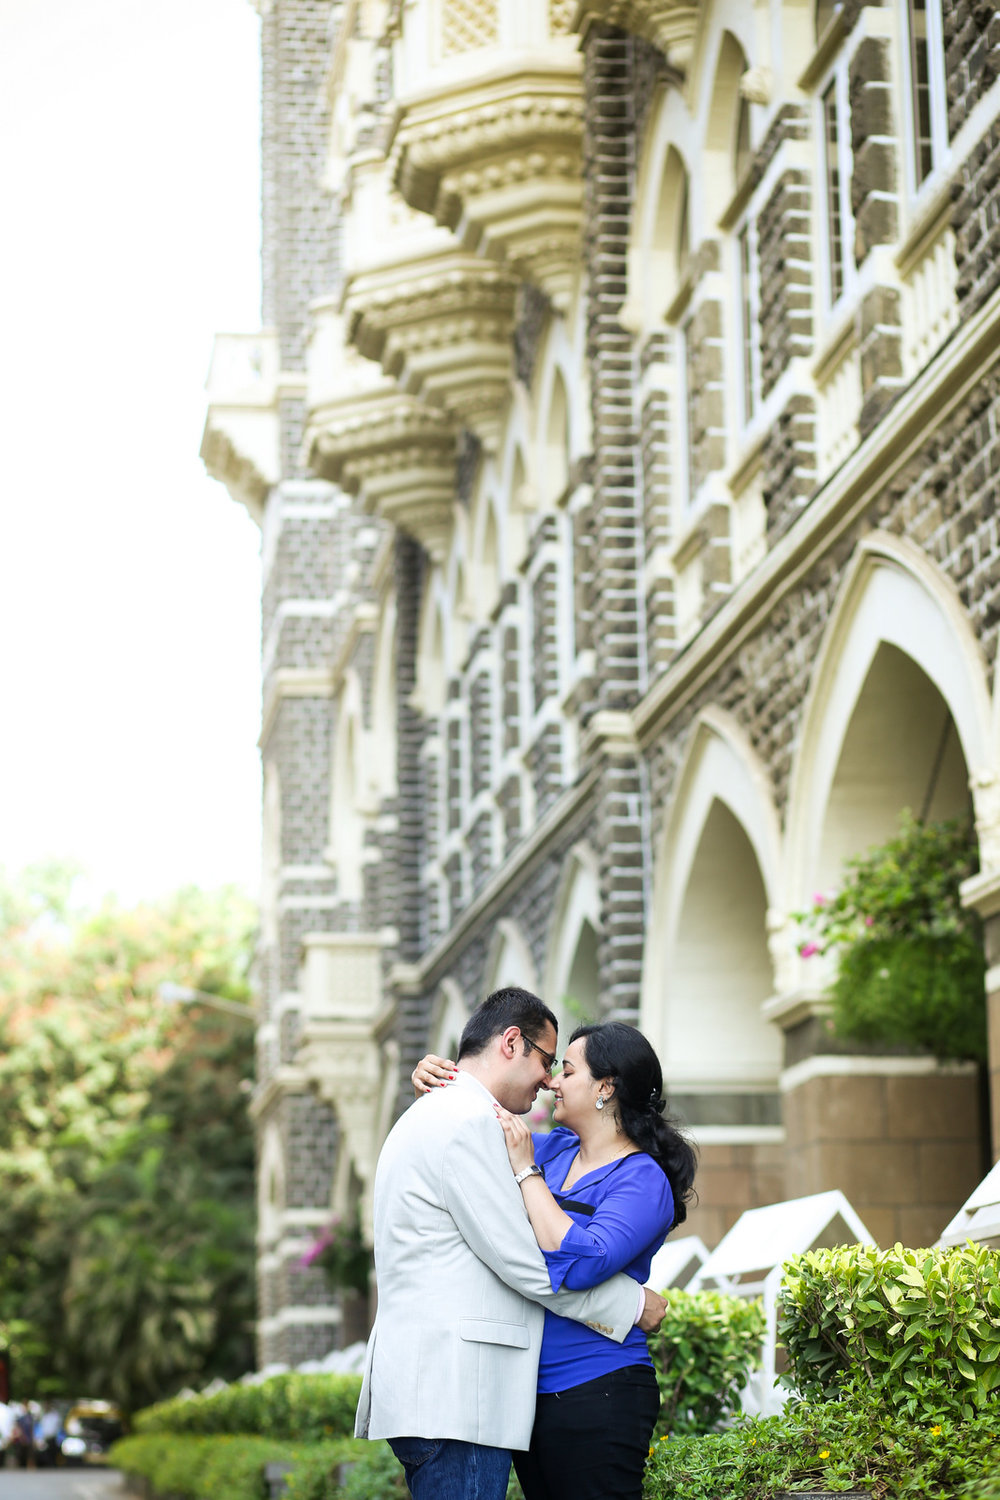 mumbai-engagement-session-into-candid-photography-rh-07.jpg